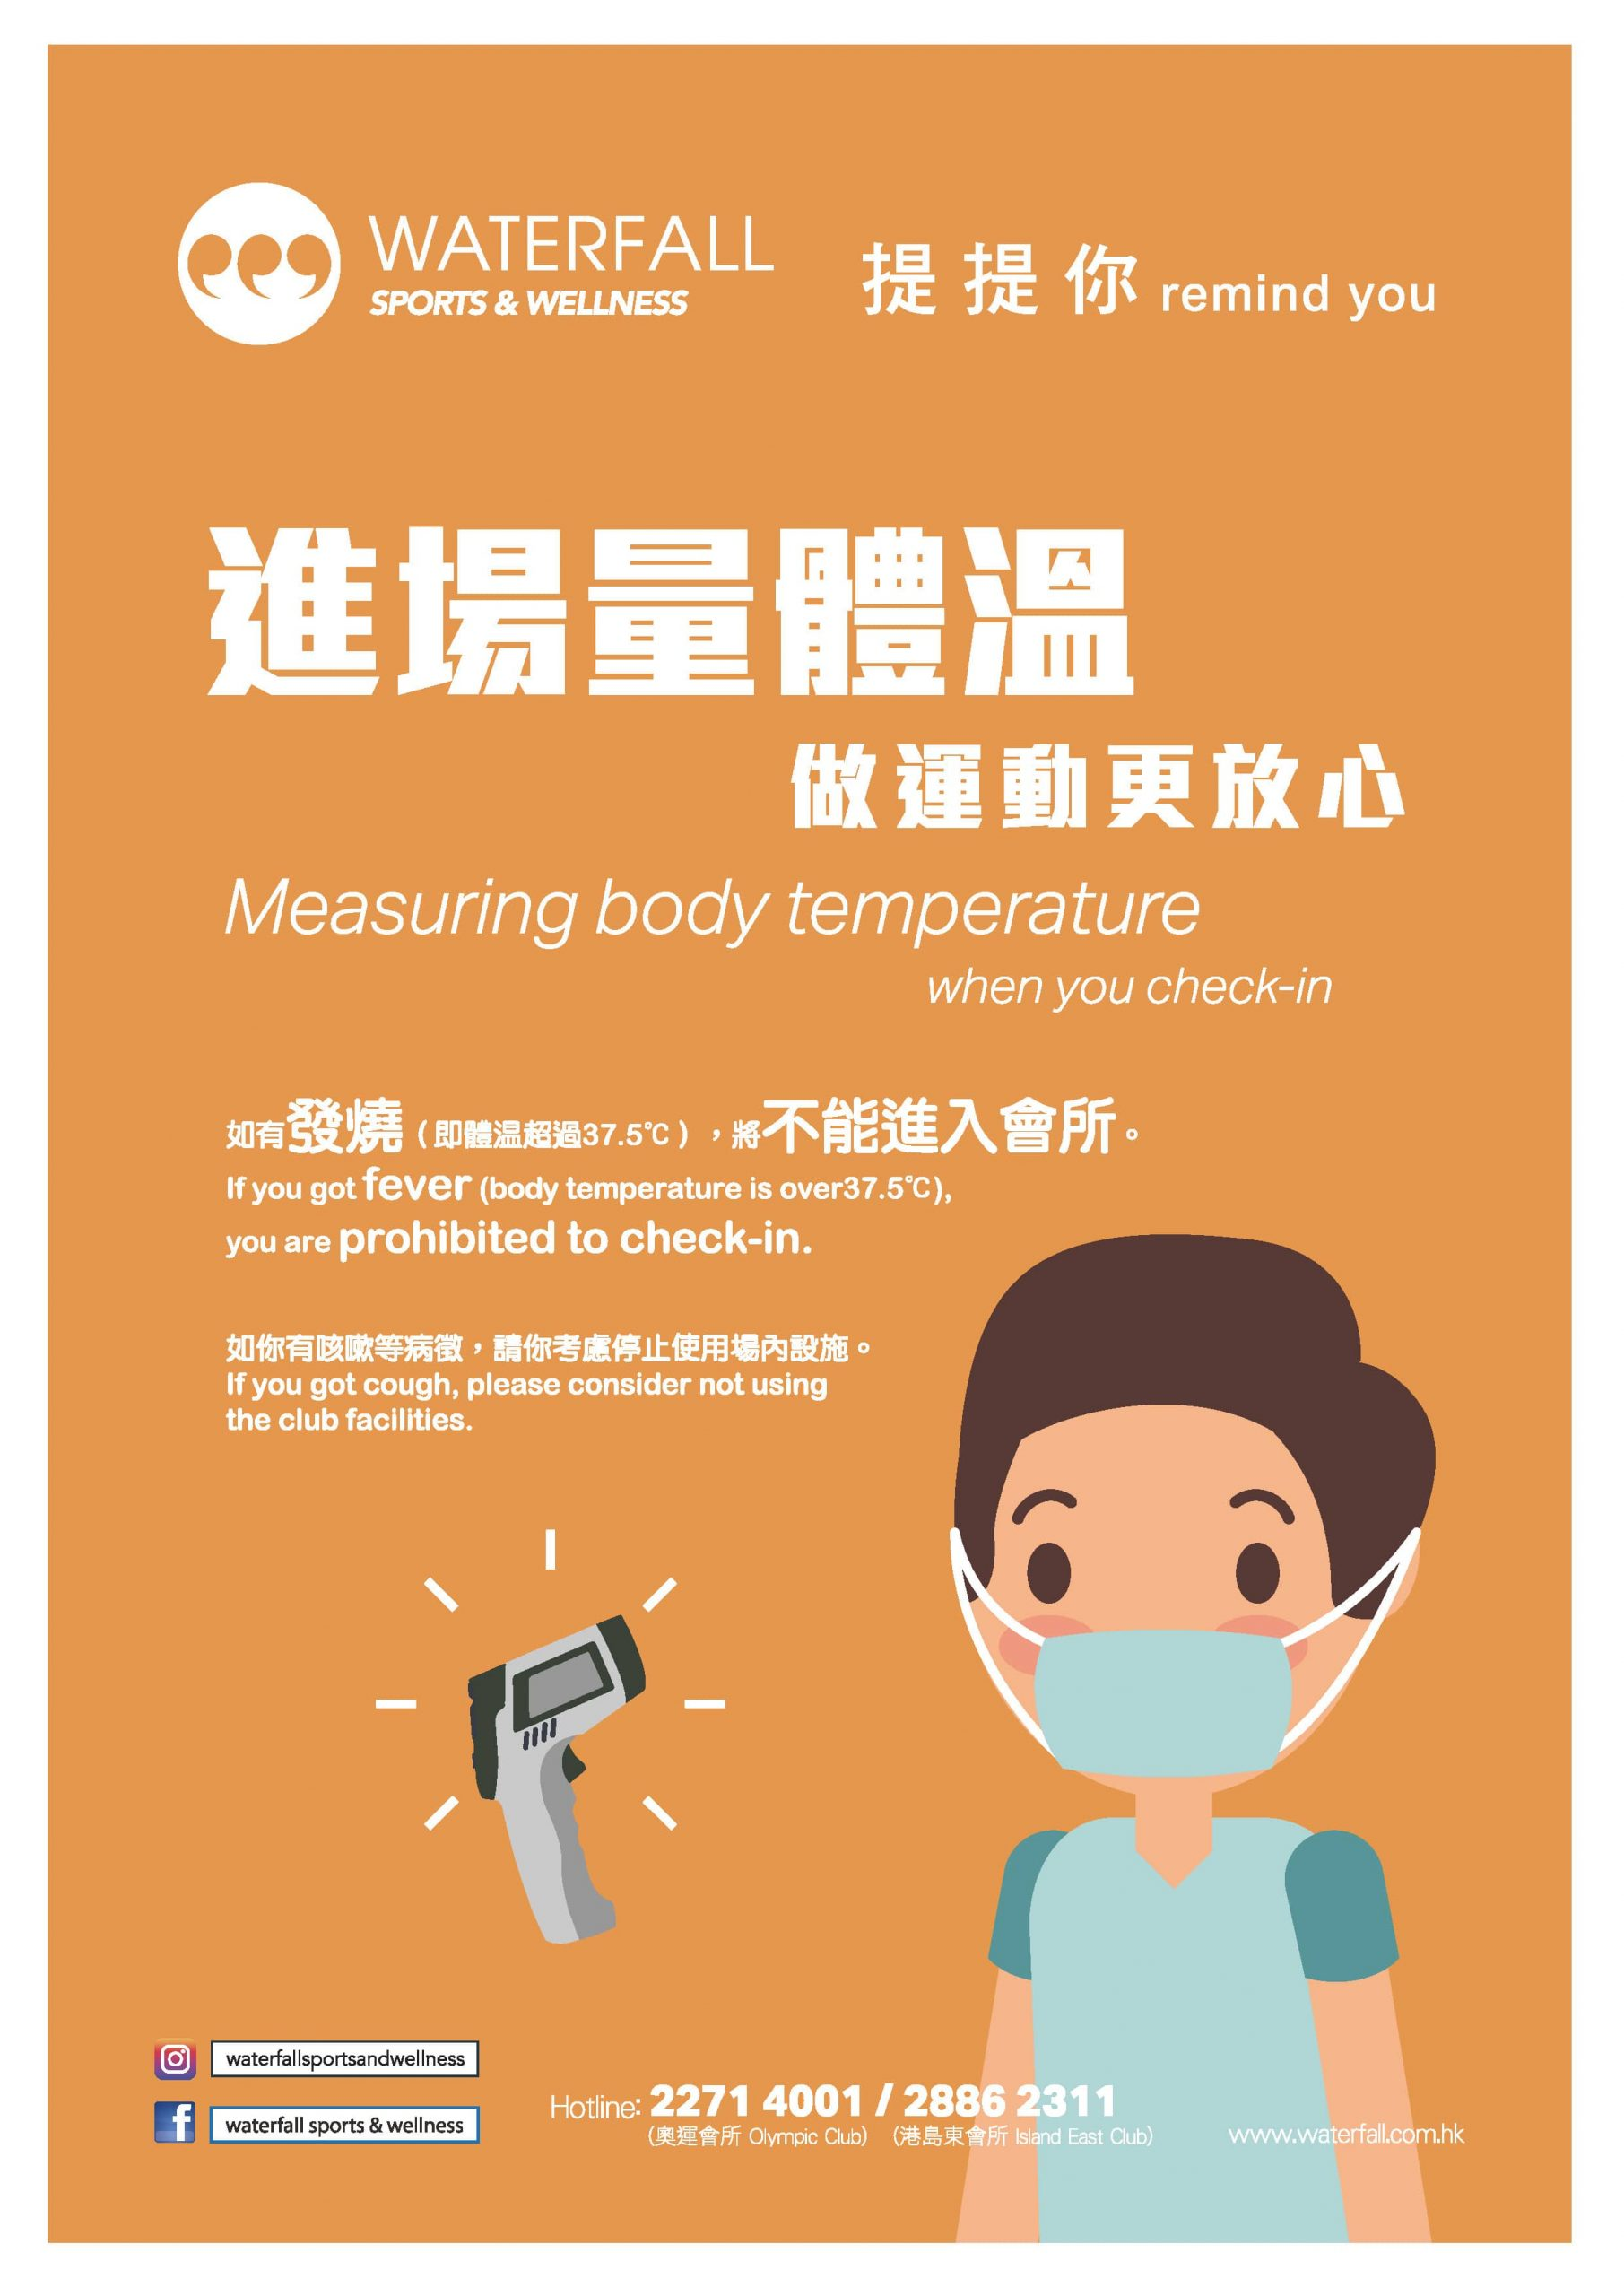 Measuring body temperature when you check-in